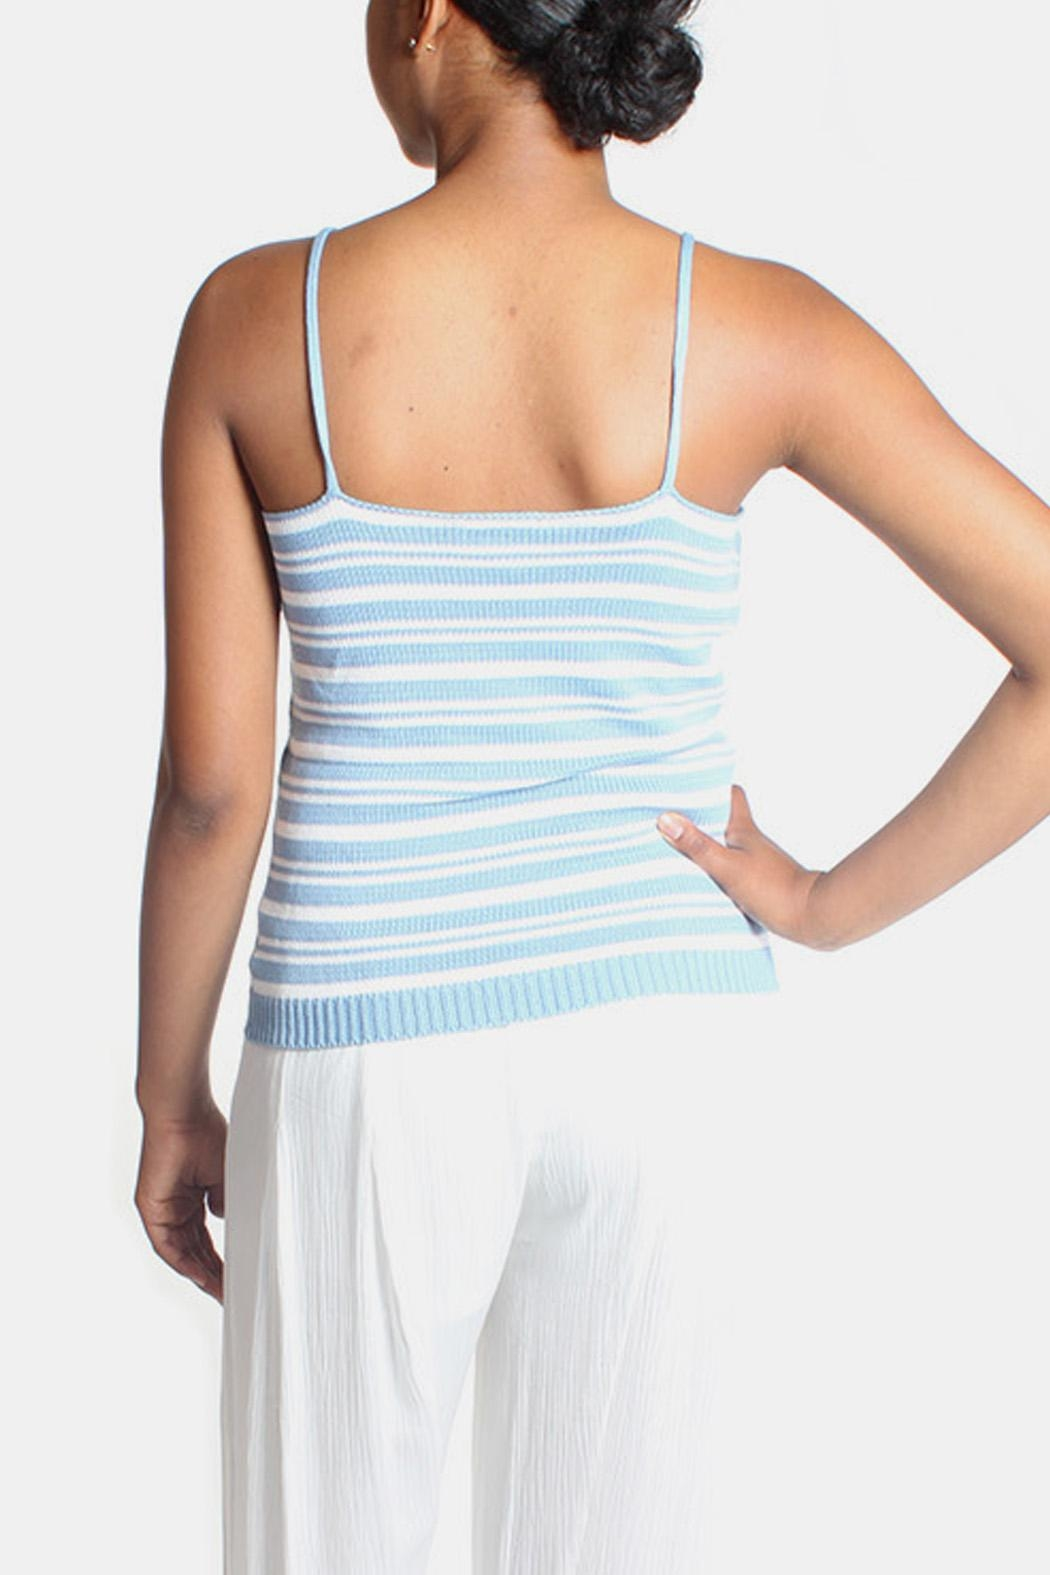 Lumiere Sky Knit Striped Top - Back Cropped Image